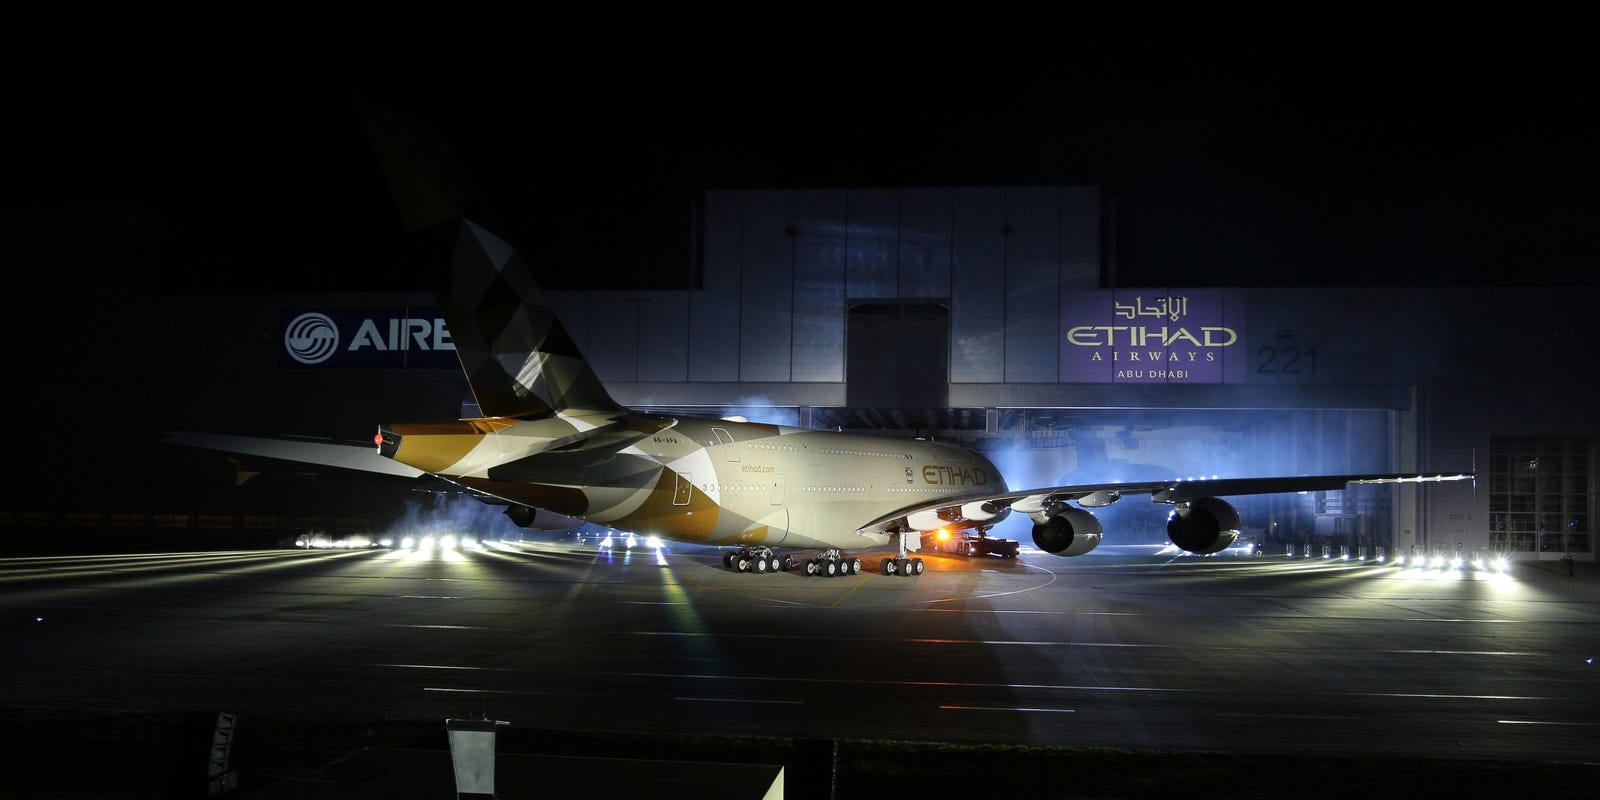 First look: Etihad shows off new paint scheme on its A380